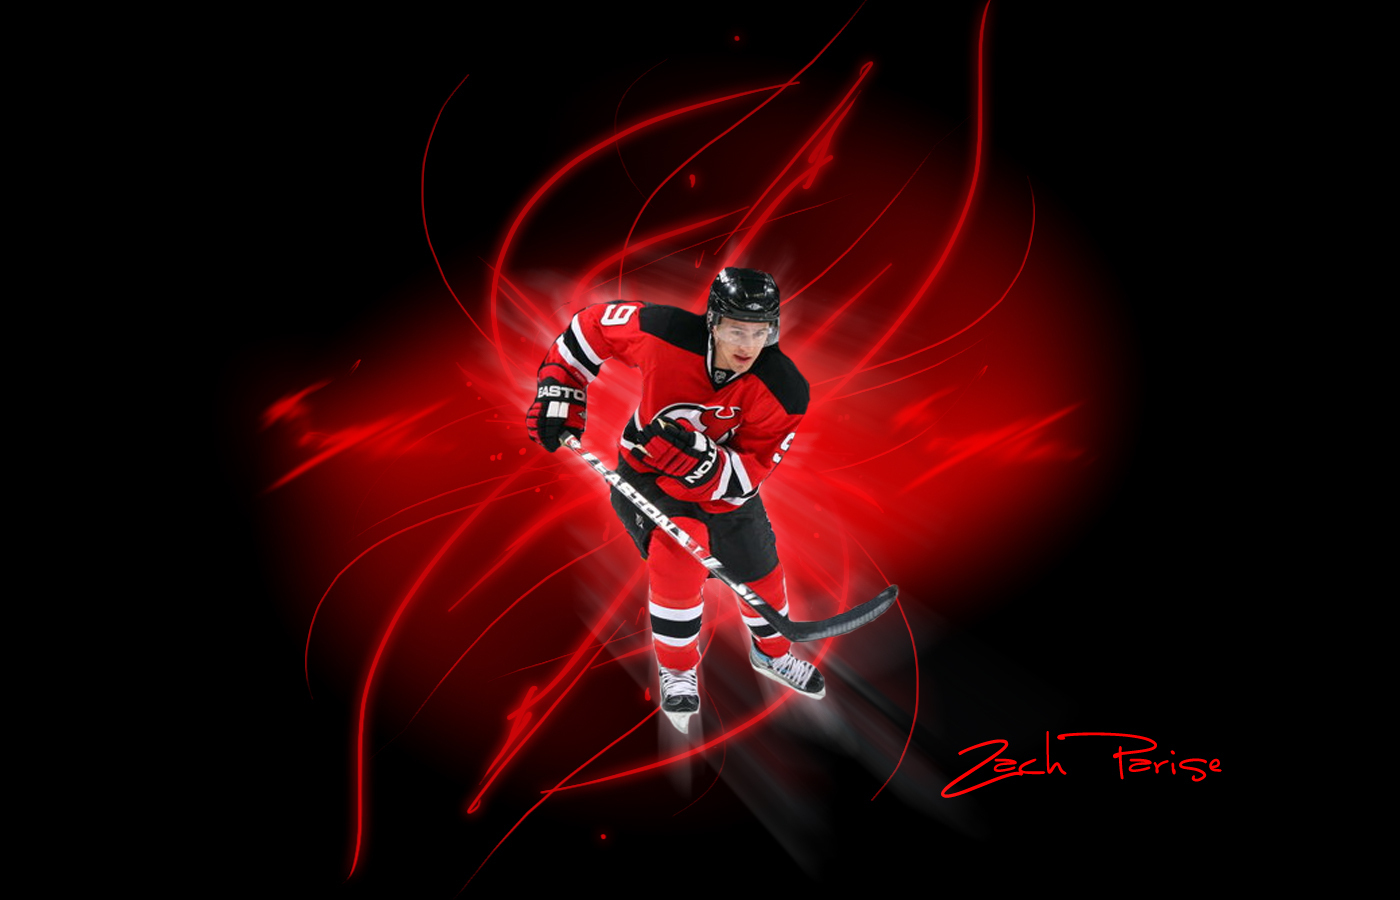 The nhl images zach parise wallpaper hd wallpaper and background the nhl images zach parise wallpaper hd wallpaper and background photos sciox Choice Image